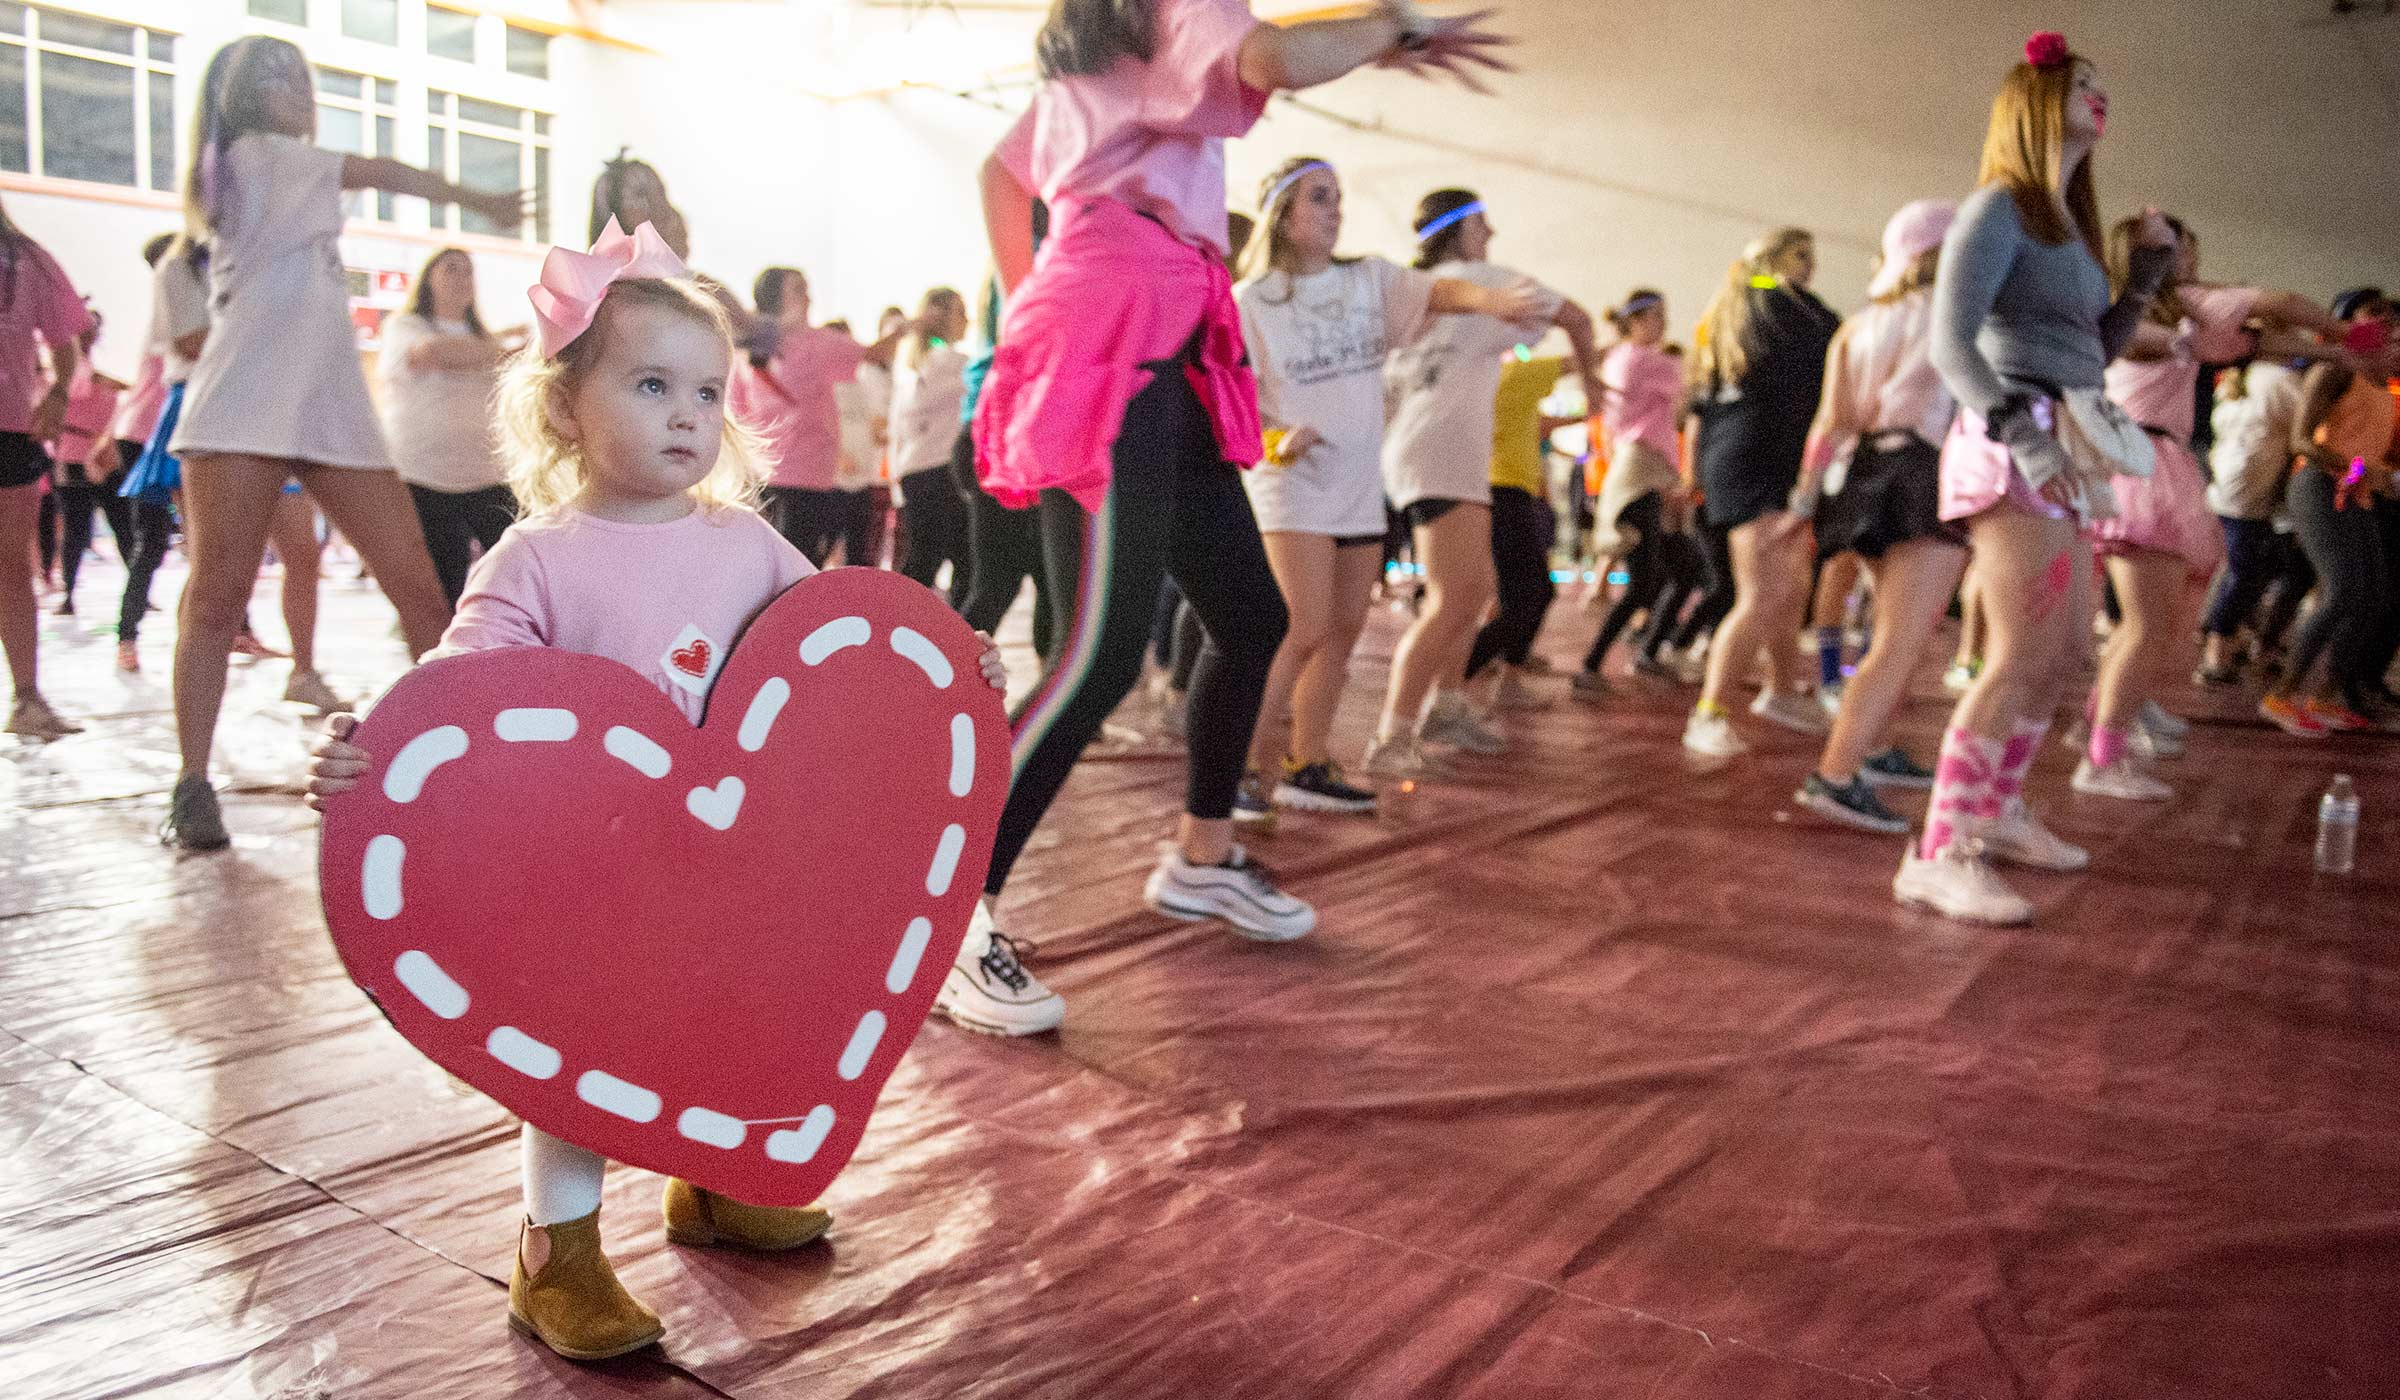 Two year old Mary Michael Kimbrough holds a Dance Marathon heart on the dance floor, while MSU students dance around her.